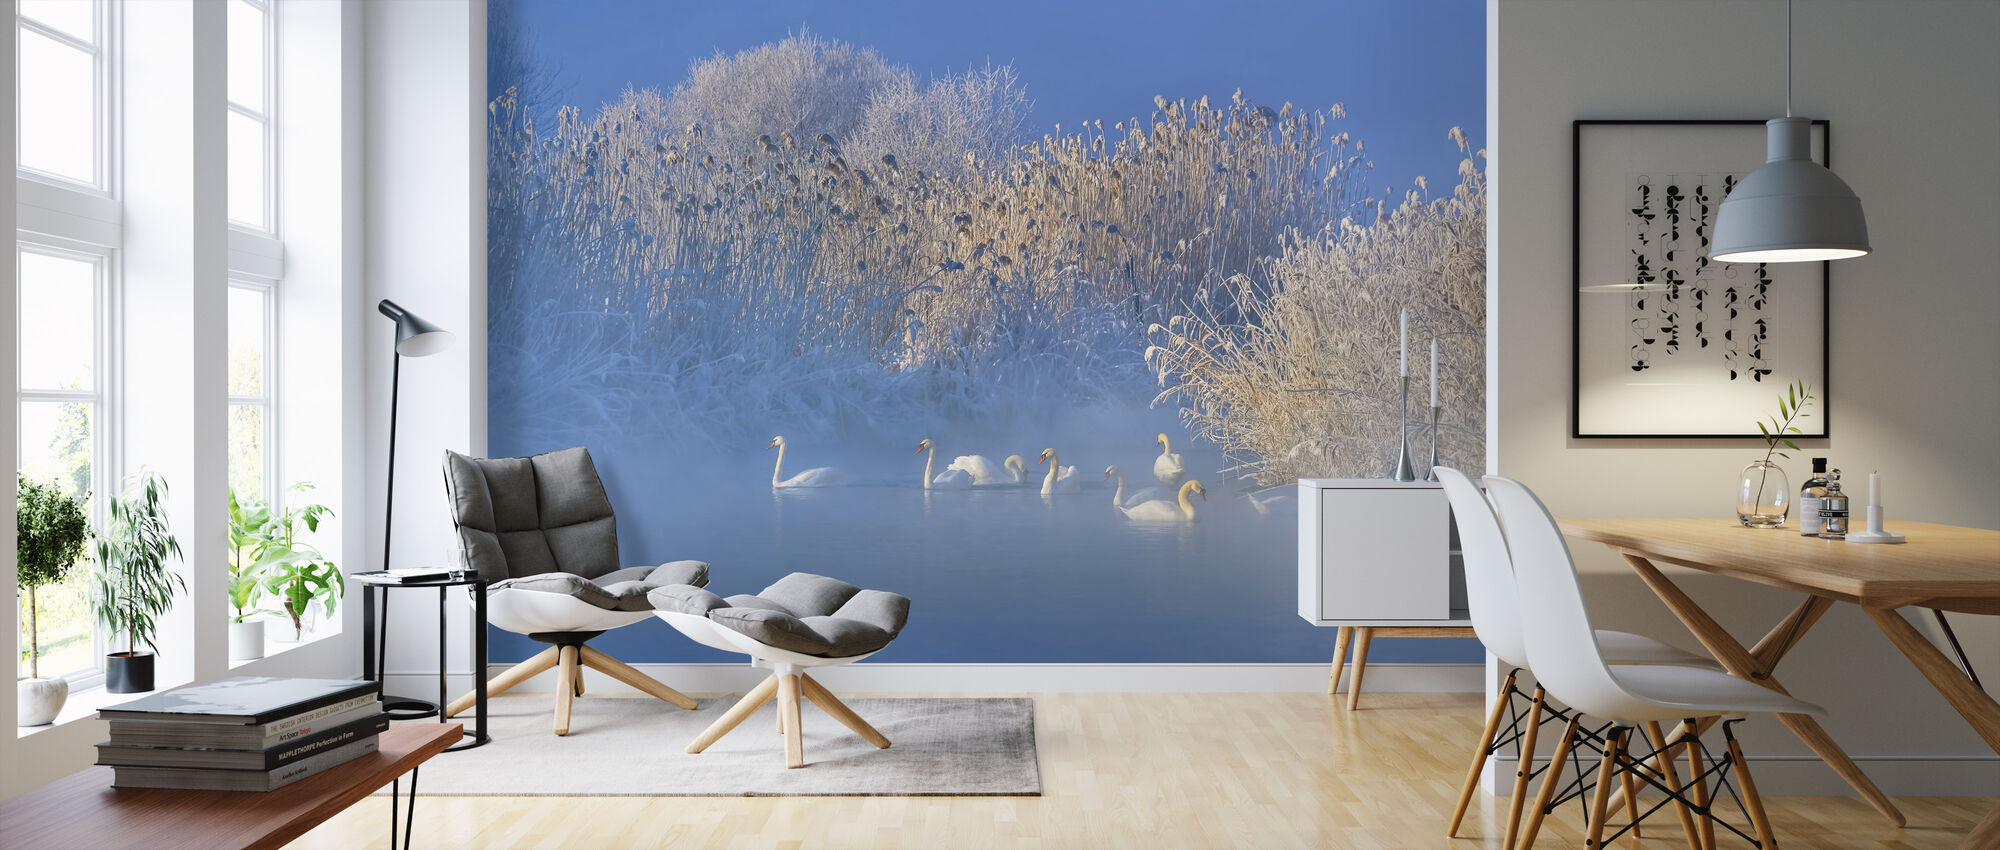 Blue Swan Lake - Wallpaper - Living Room